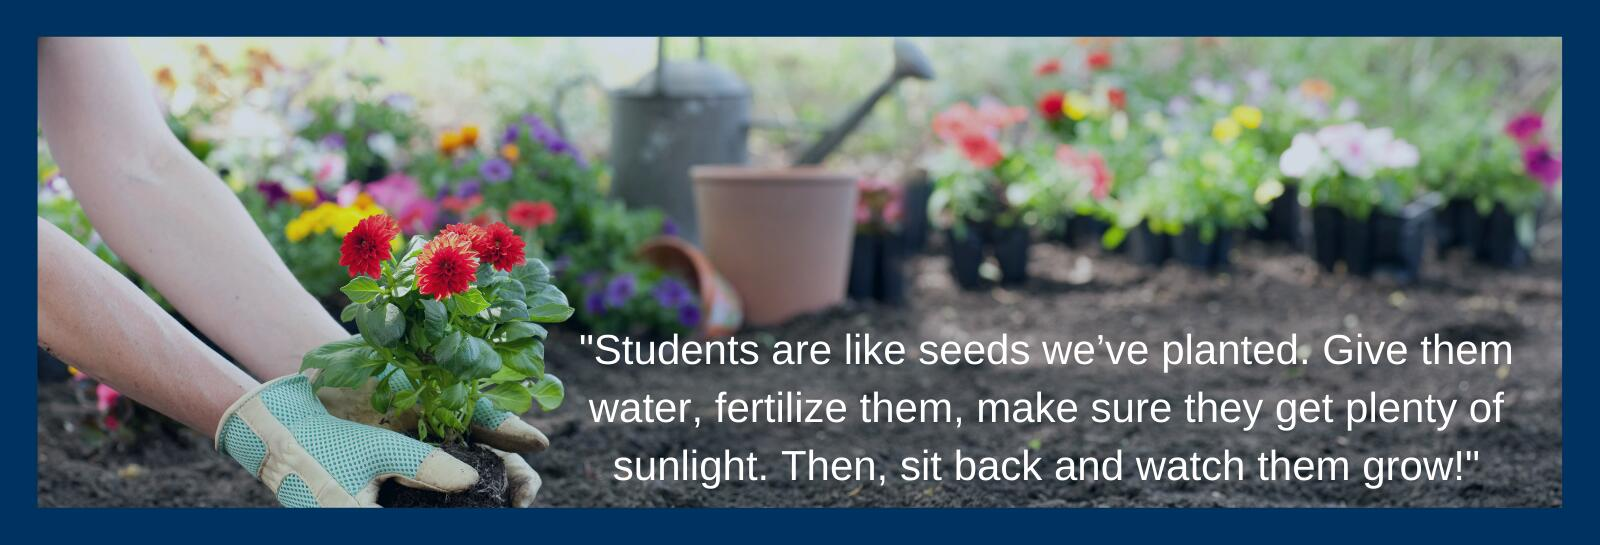 plant seeds quote